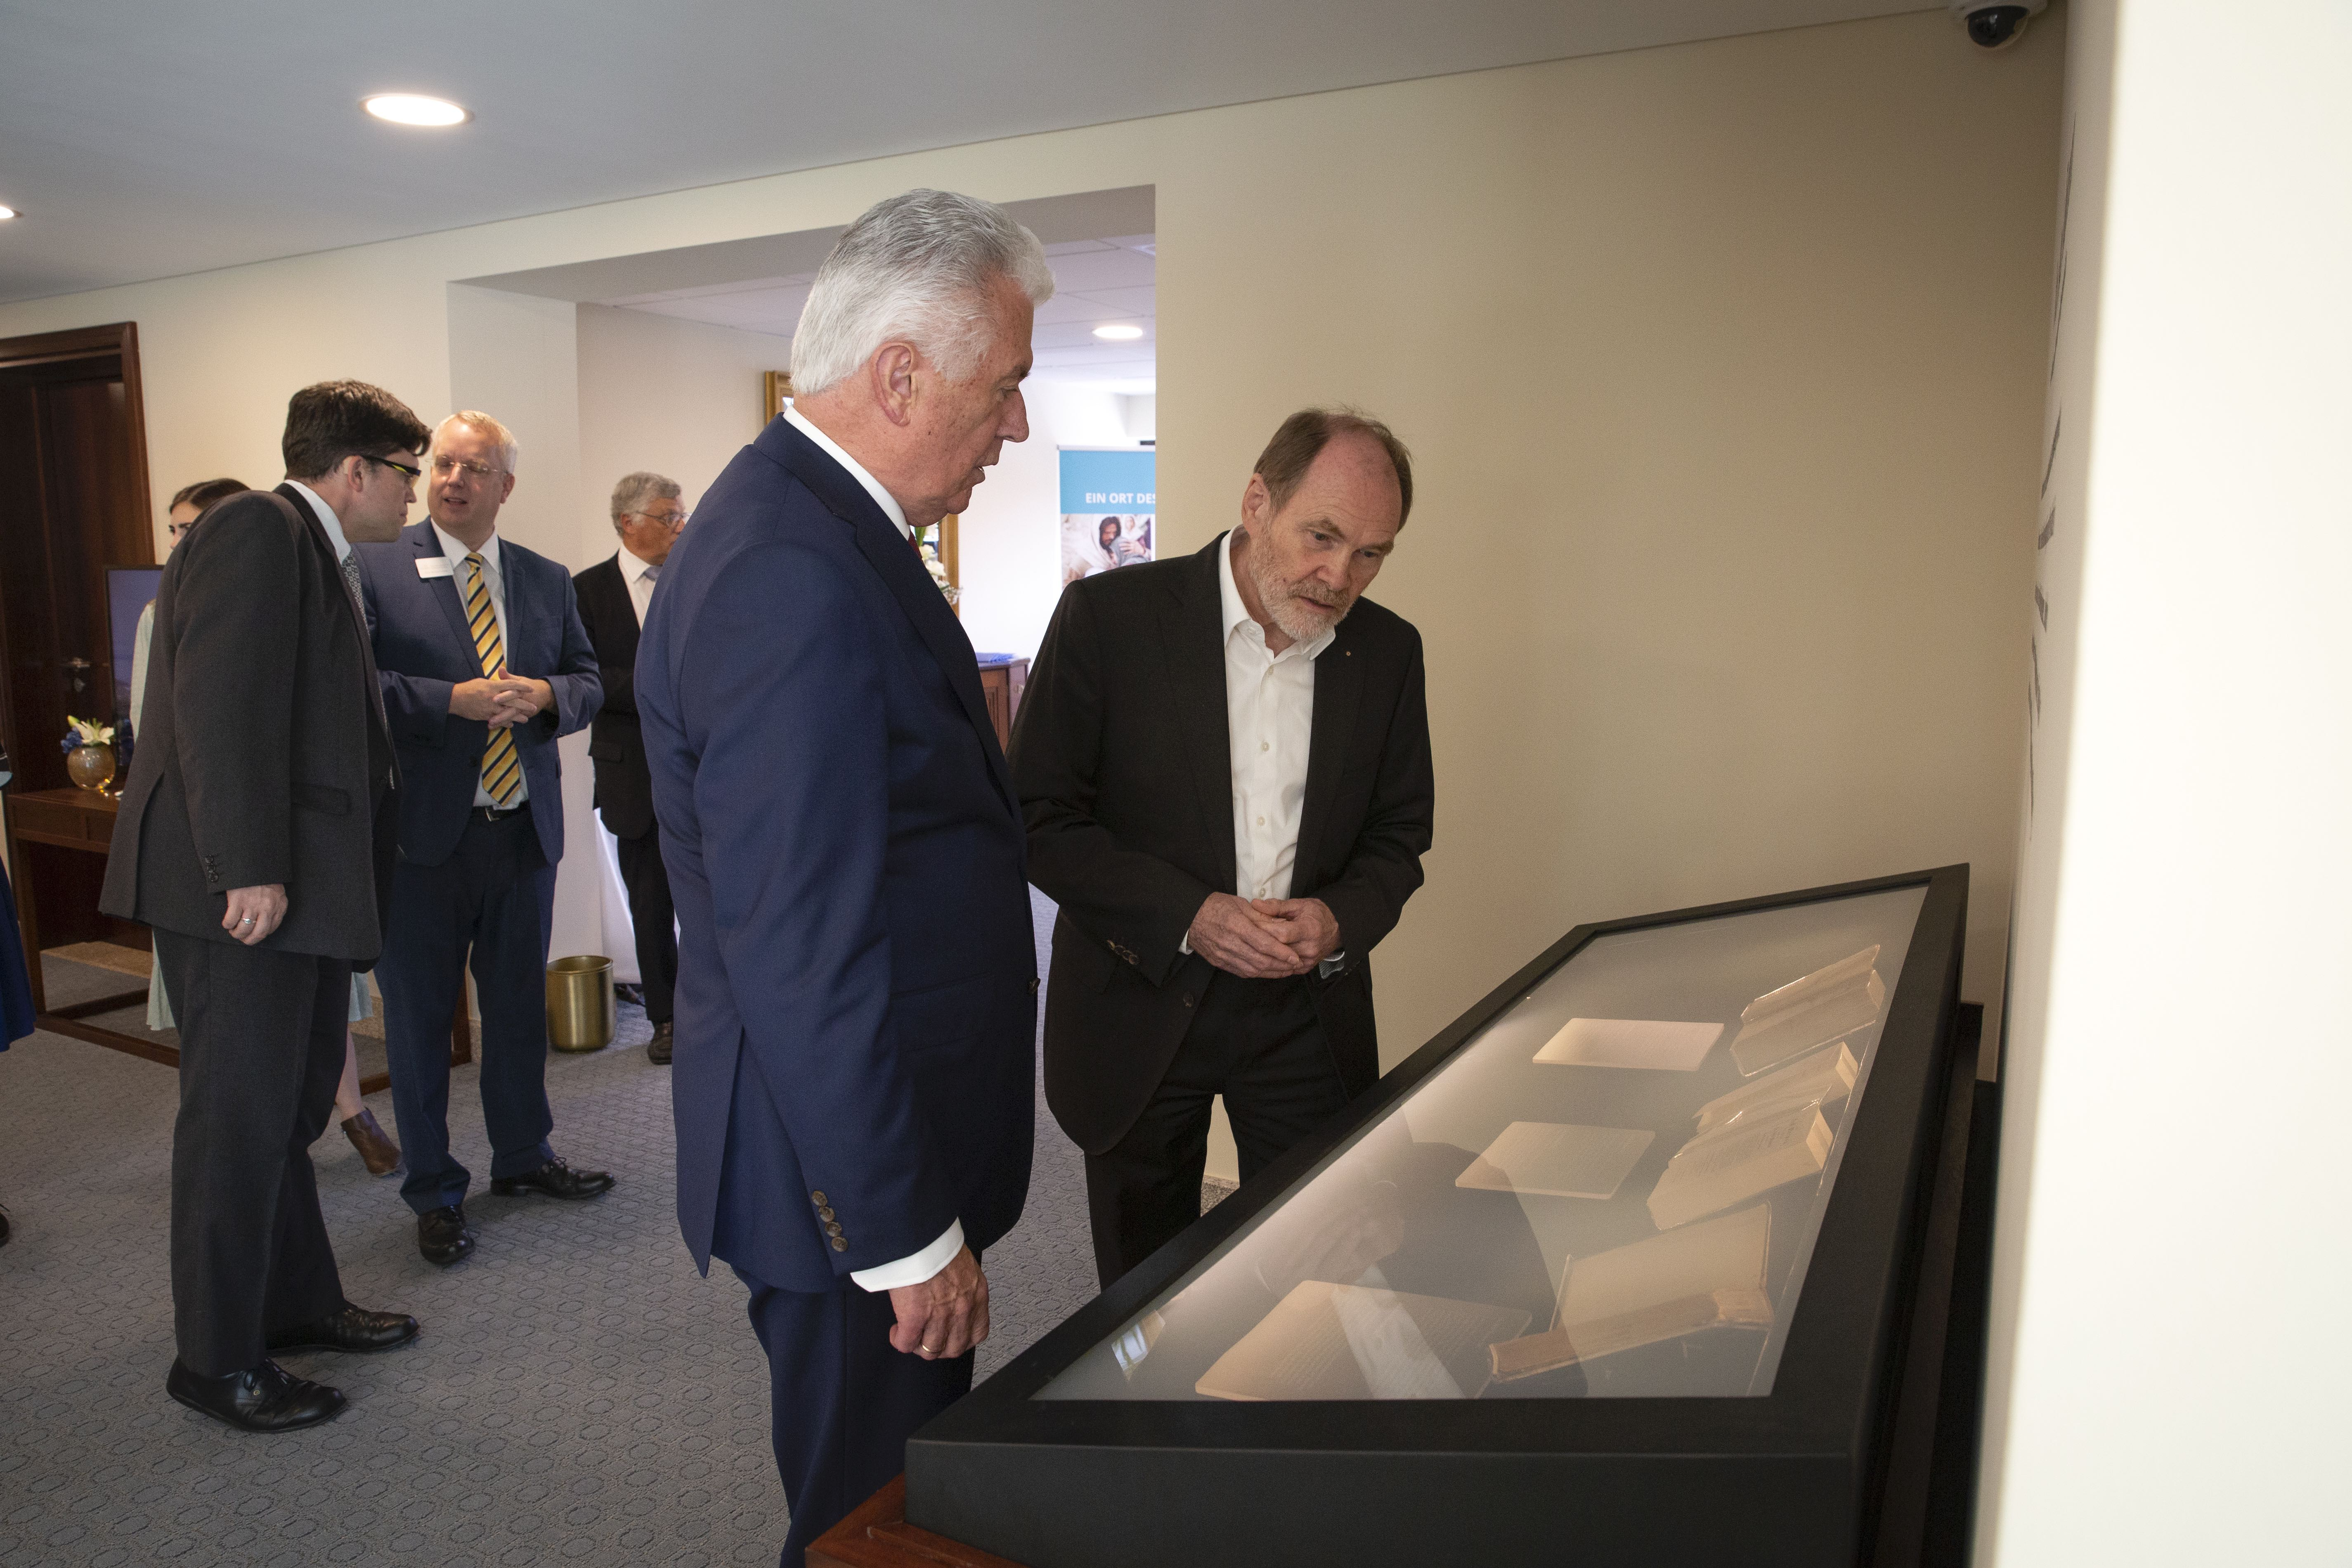 Elder Dieter F. Uchtdorf, left, shows Wolfgang Thielman — a journalist from Die Zeit, a major, German newspaper — a case displaying four early copies of the Book of Mormon in German and English at the Frankfurt Temple Visitors' Center in Friedrichsdorf, Germany, on Tuesday, Sept. 10, 2019.